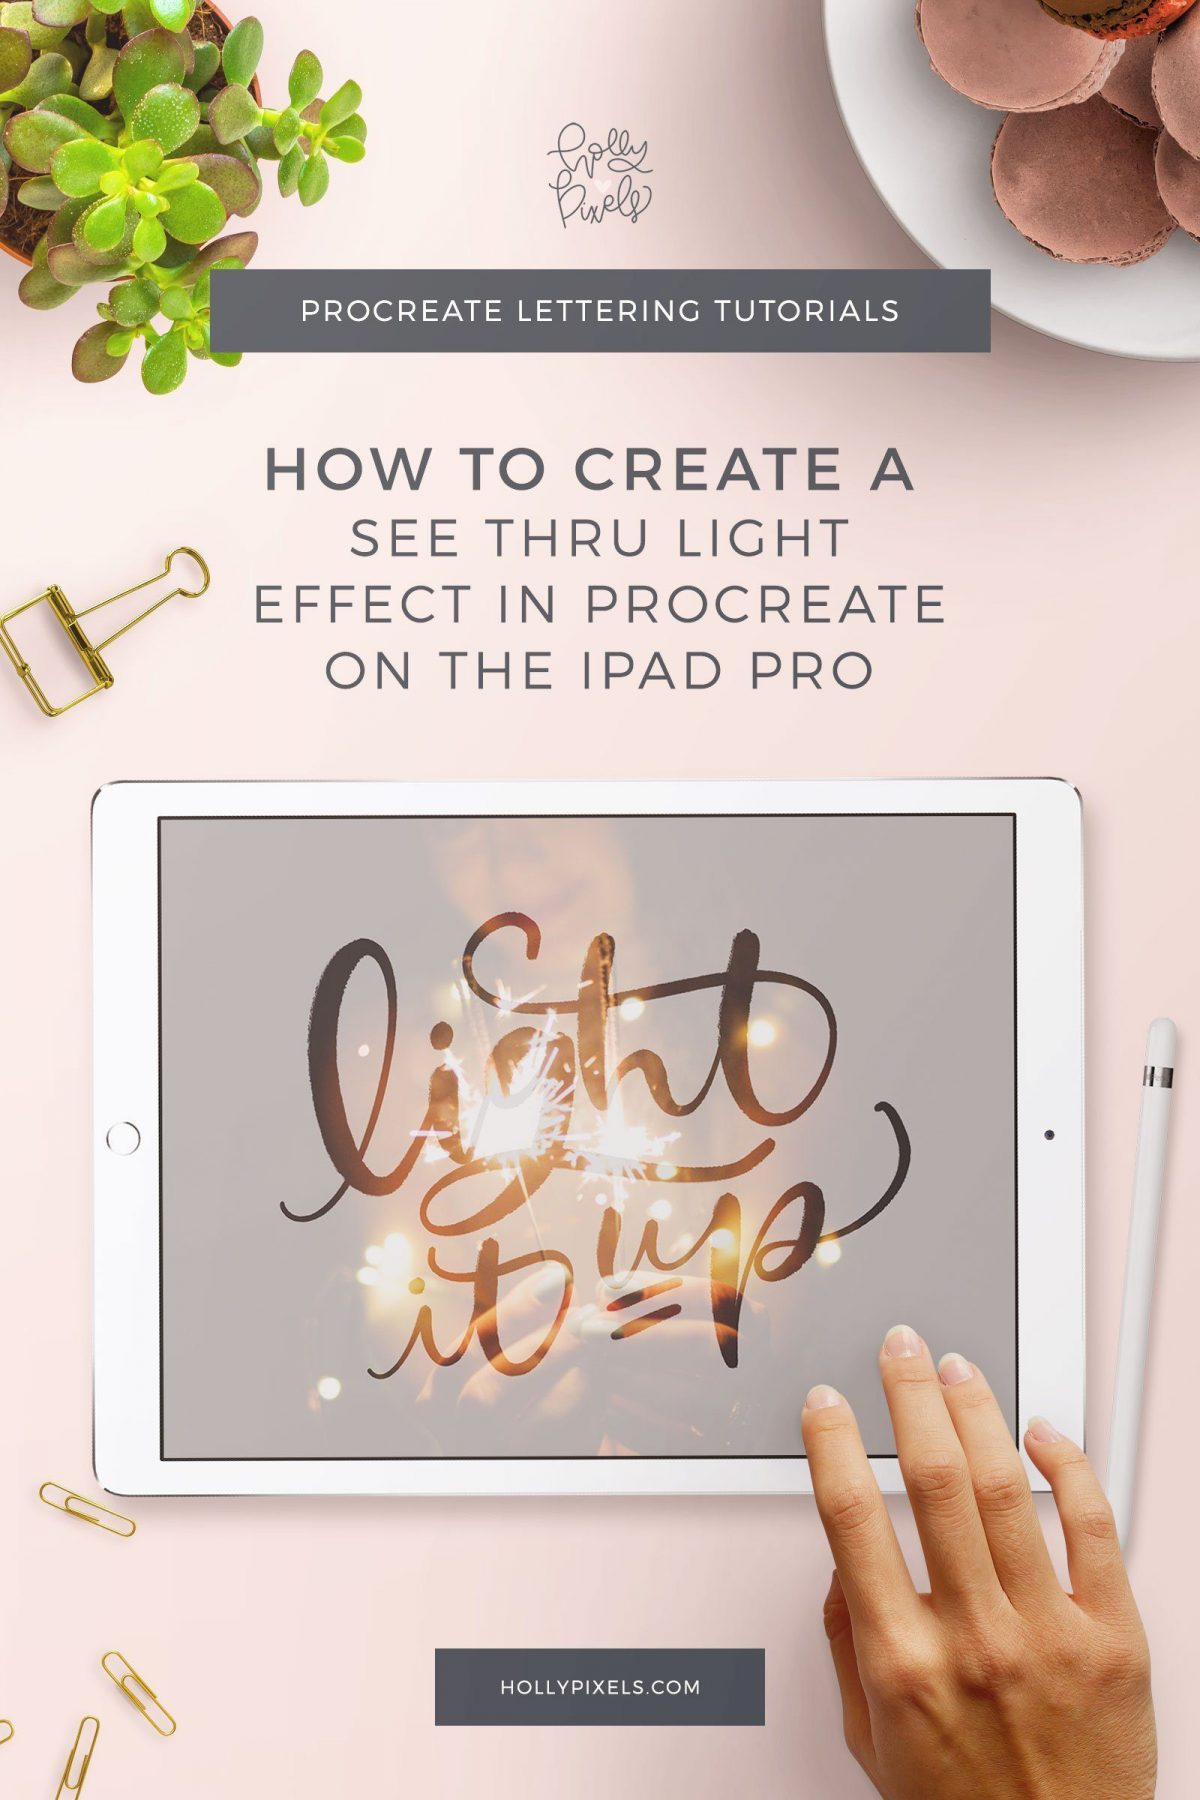 I wanted to create a super easy beginner tutorial with another way to use photographs in your lettering. For this you will create a see through light up effect in Procreate which looks fantastic with sparkler images from Unsplash!